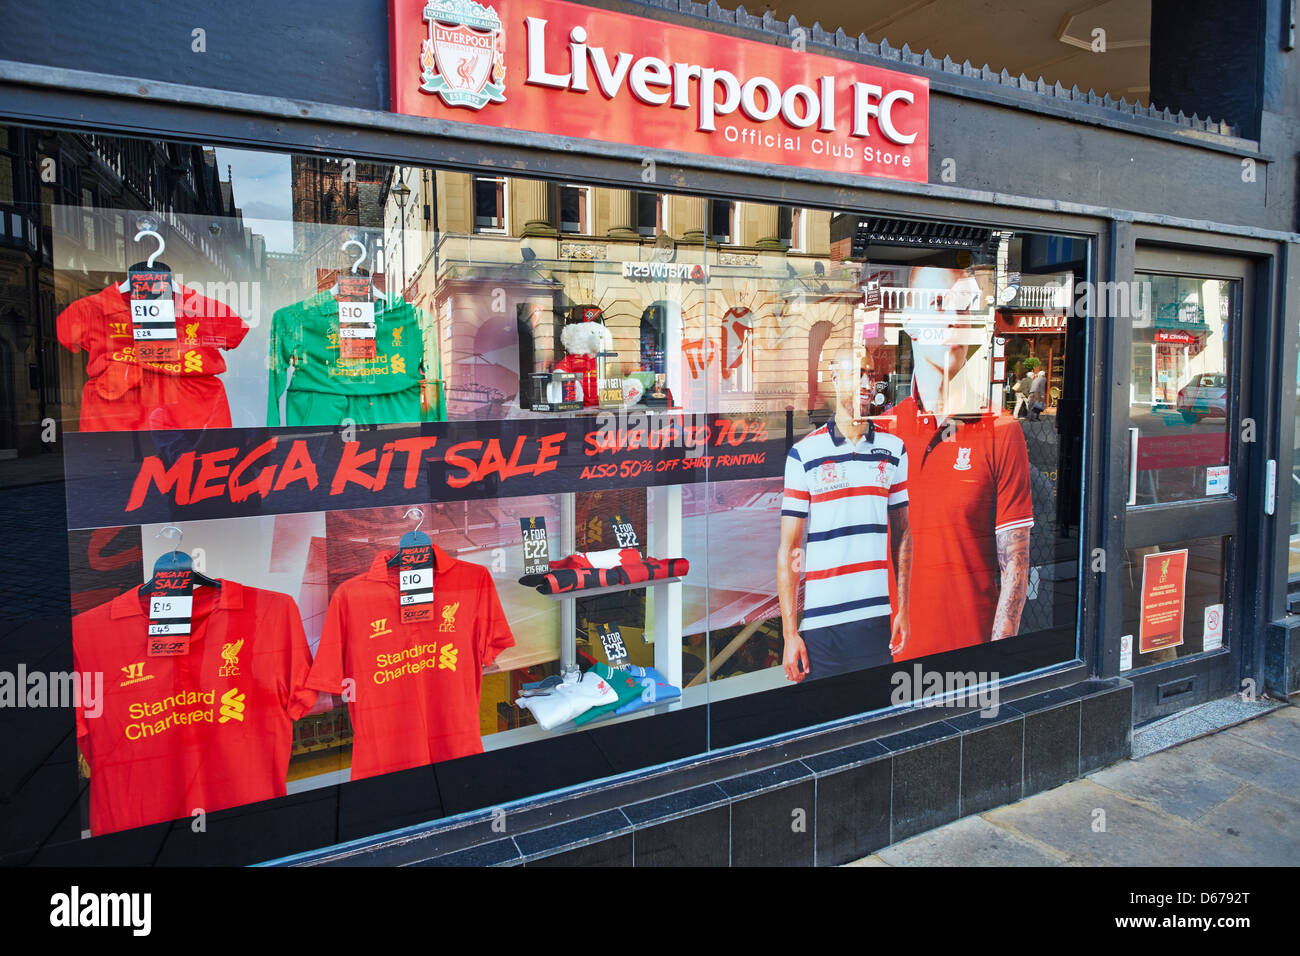 Liverpool Football Club Official Shop Eastgate Street